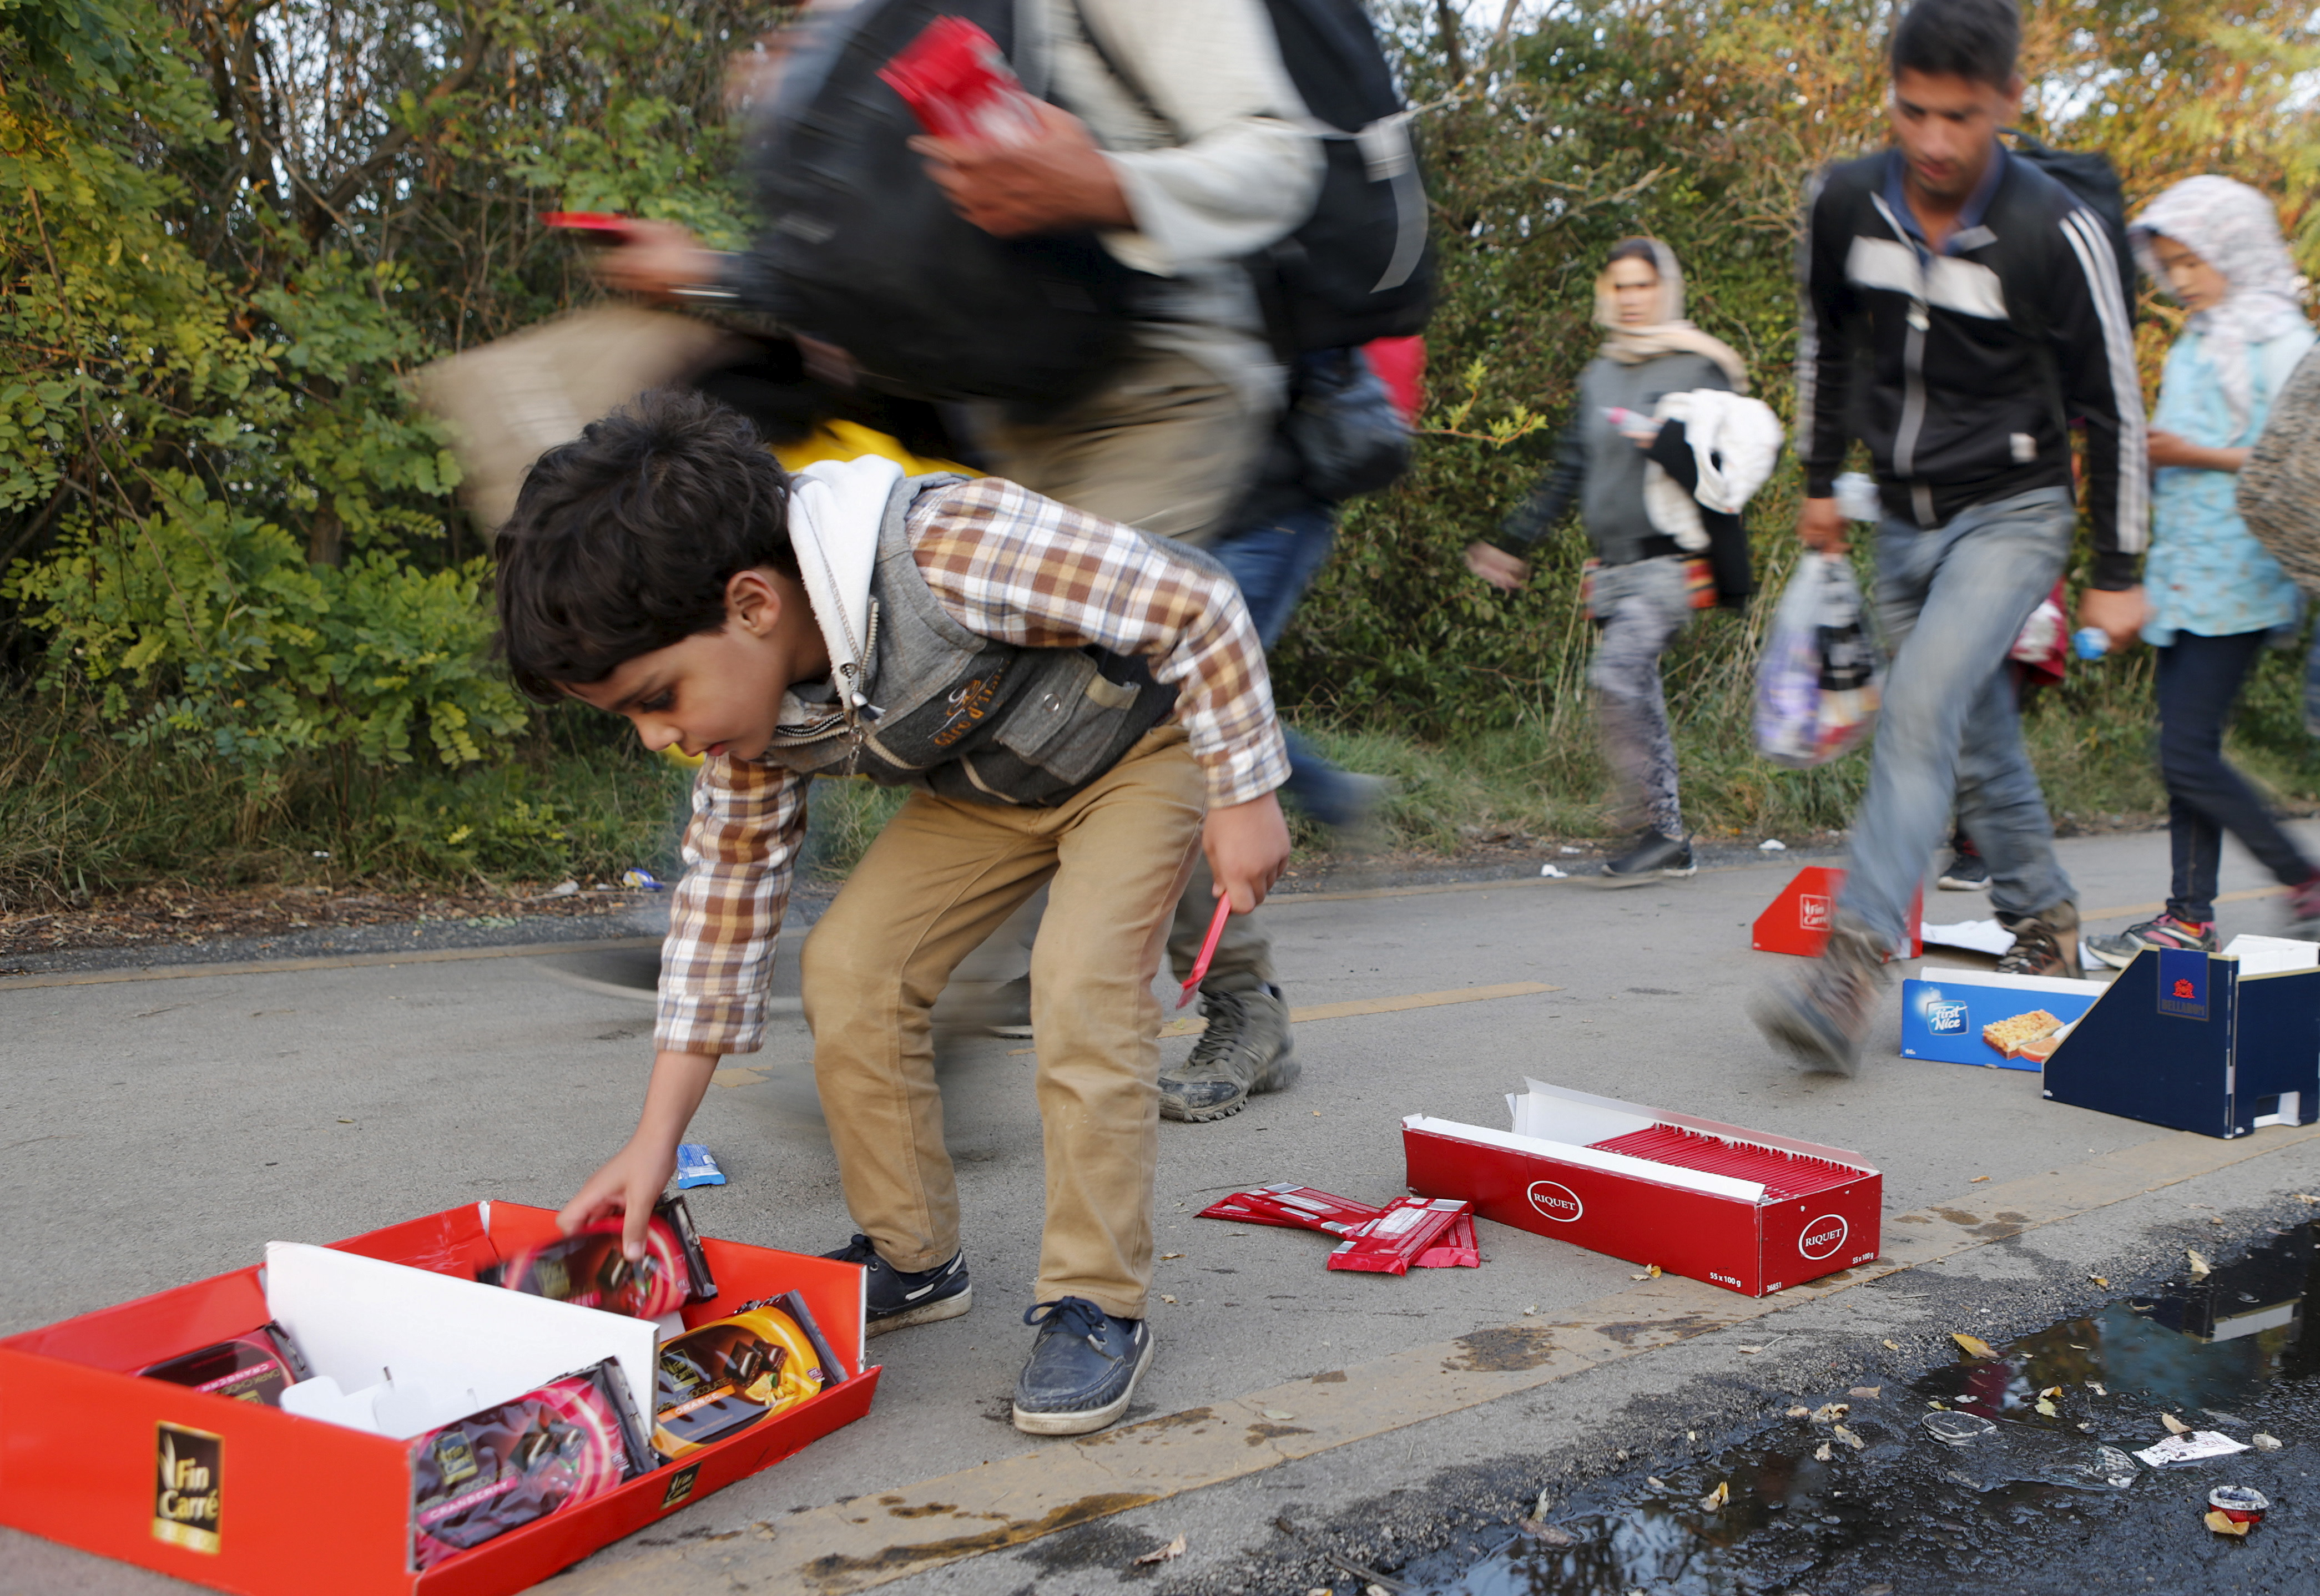 A child reaches for candy that had been placed by the road on the way to Austria, in Hegyeshalom, Hungary, on Sept. 27, 2015. Tens of thousands of migrants, most of them fleeing war and hardship in Syria, are trying to reach Western Europe. Photo by Heinz-Peter Bader/Reuters